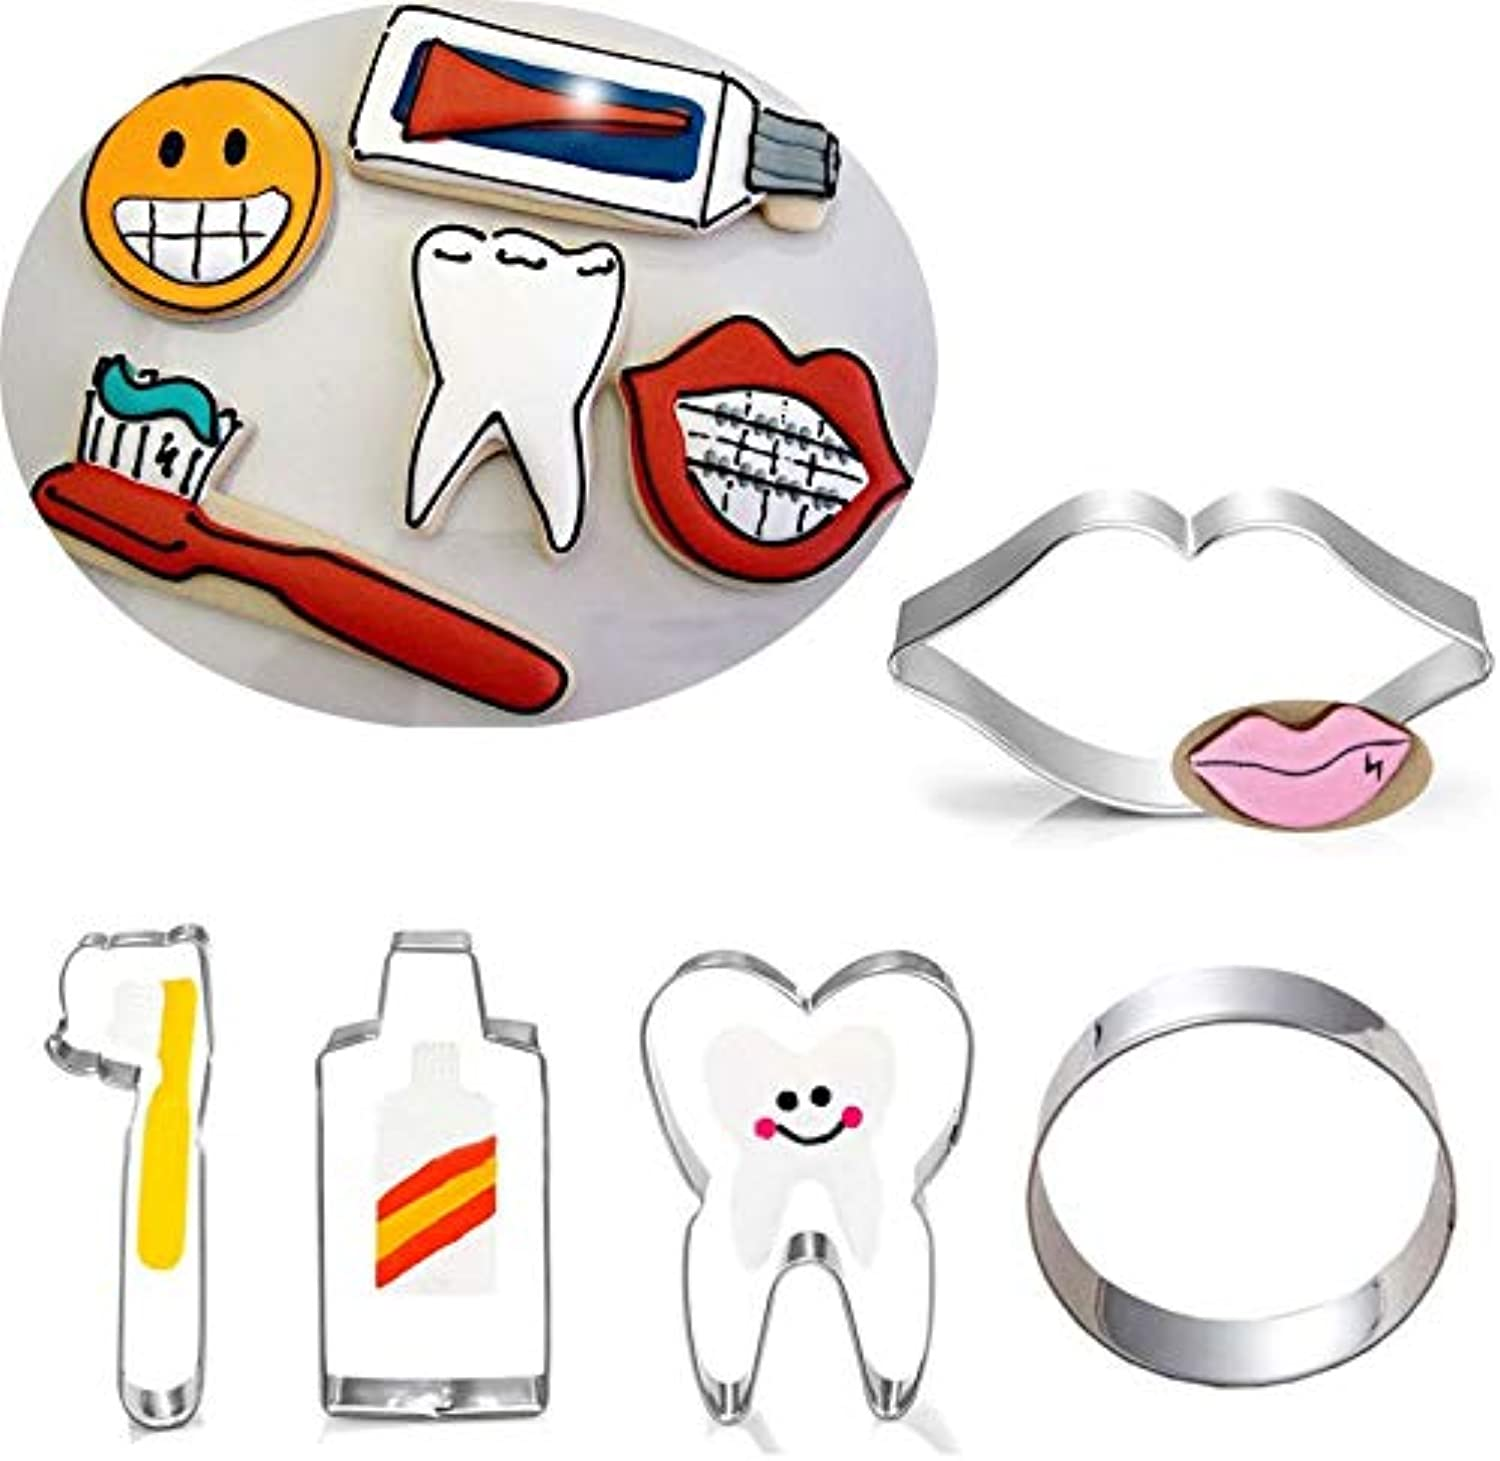 Farmerly 5pcs Patisserie reposteria Metal Cookie Cutters Teeth Toothpaste Toothbrush Lip Fondant Cake Decor Tool Pastry Shop Biscuit Mold